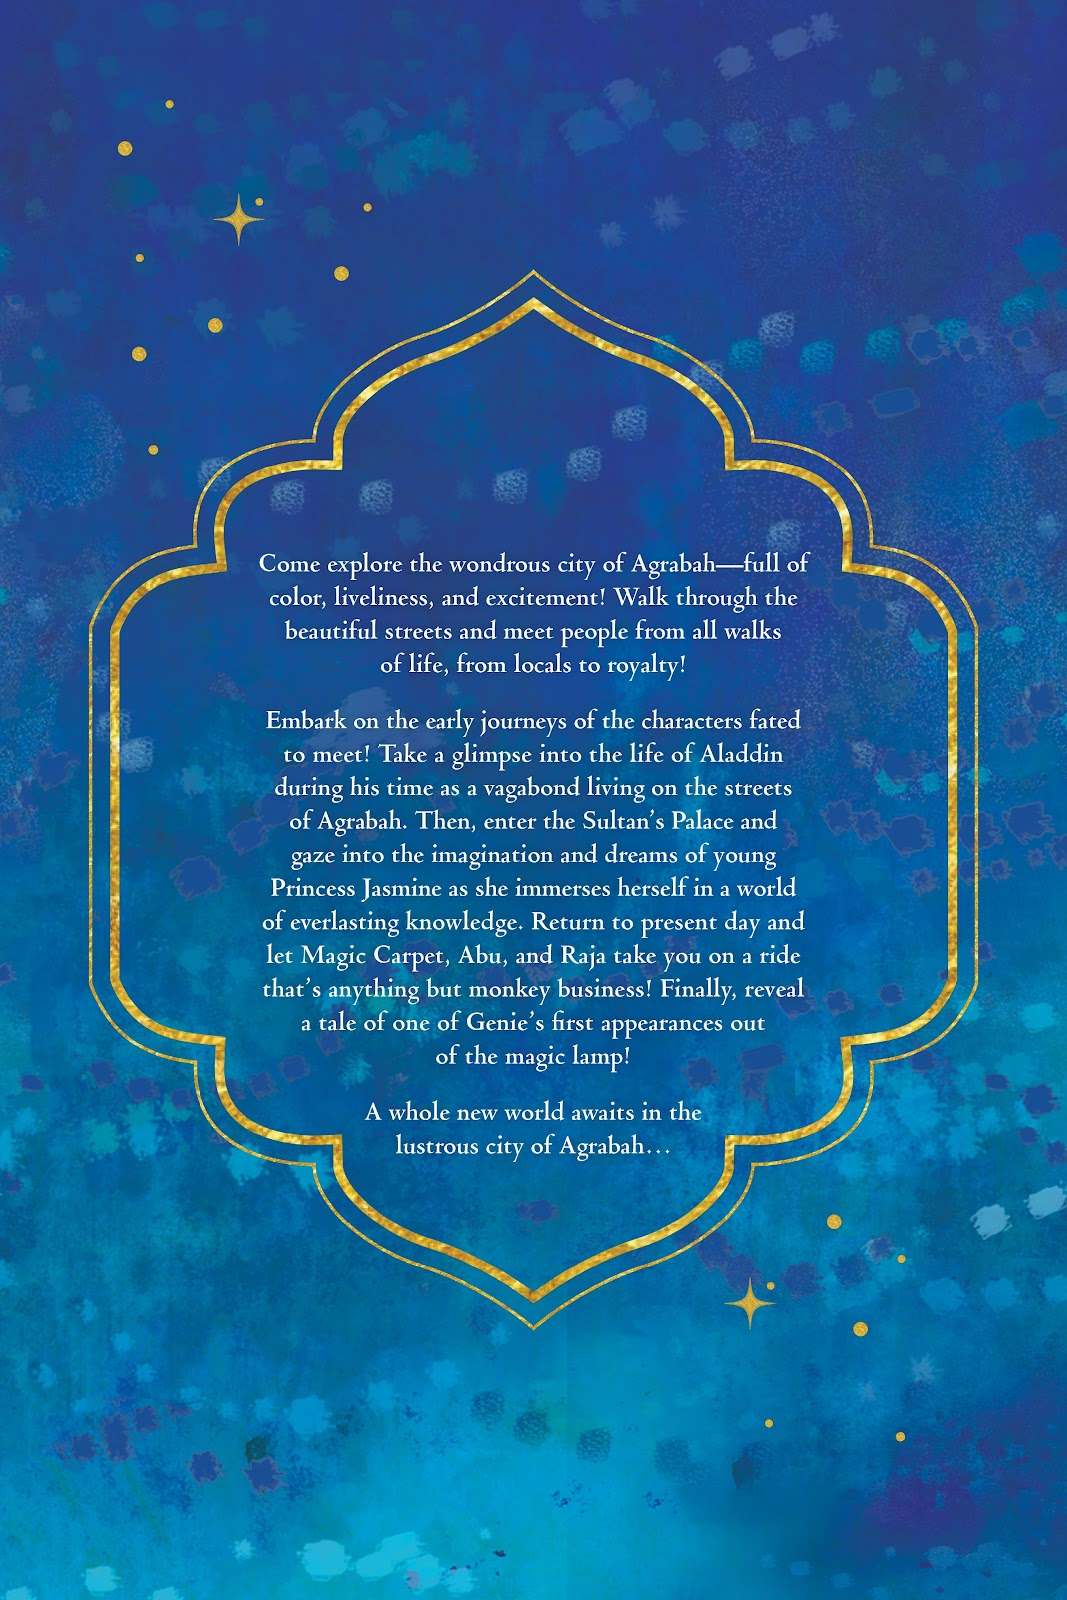 Read online Disney Aladdin: Four Tales of Agrabah comic -  Issue # TPB - 5